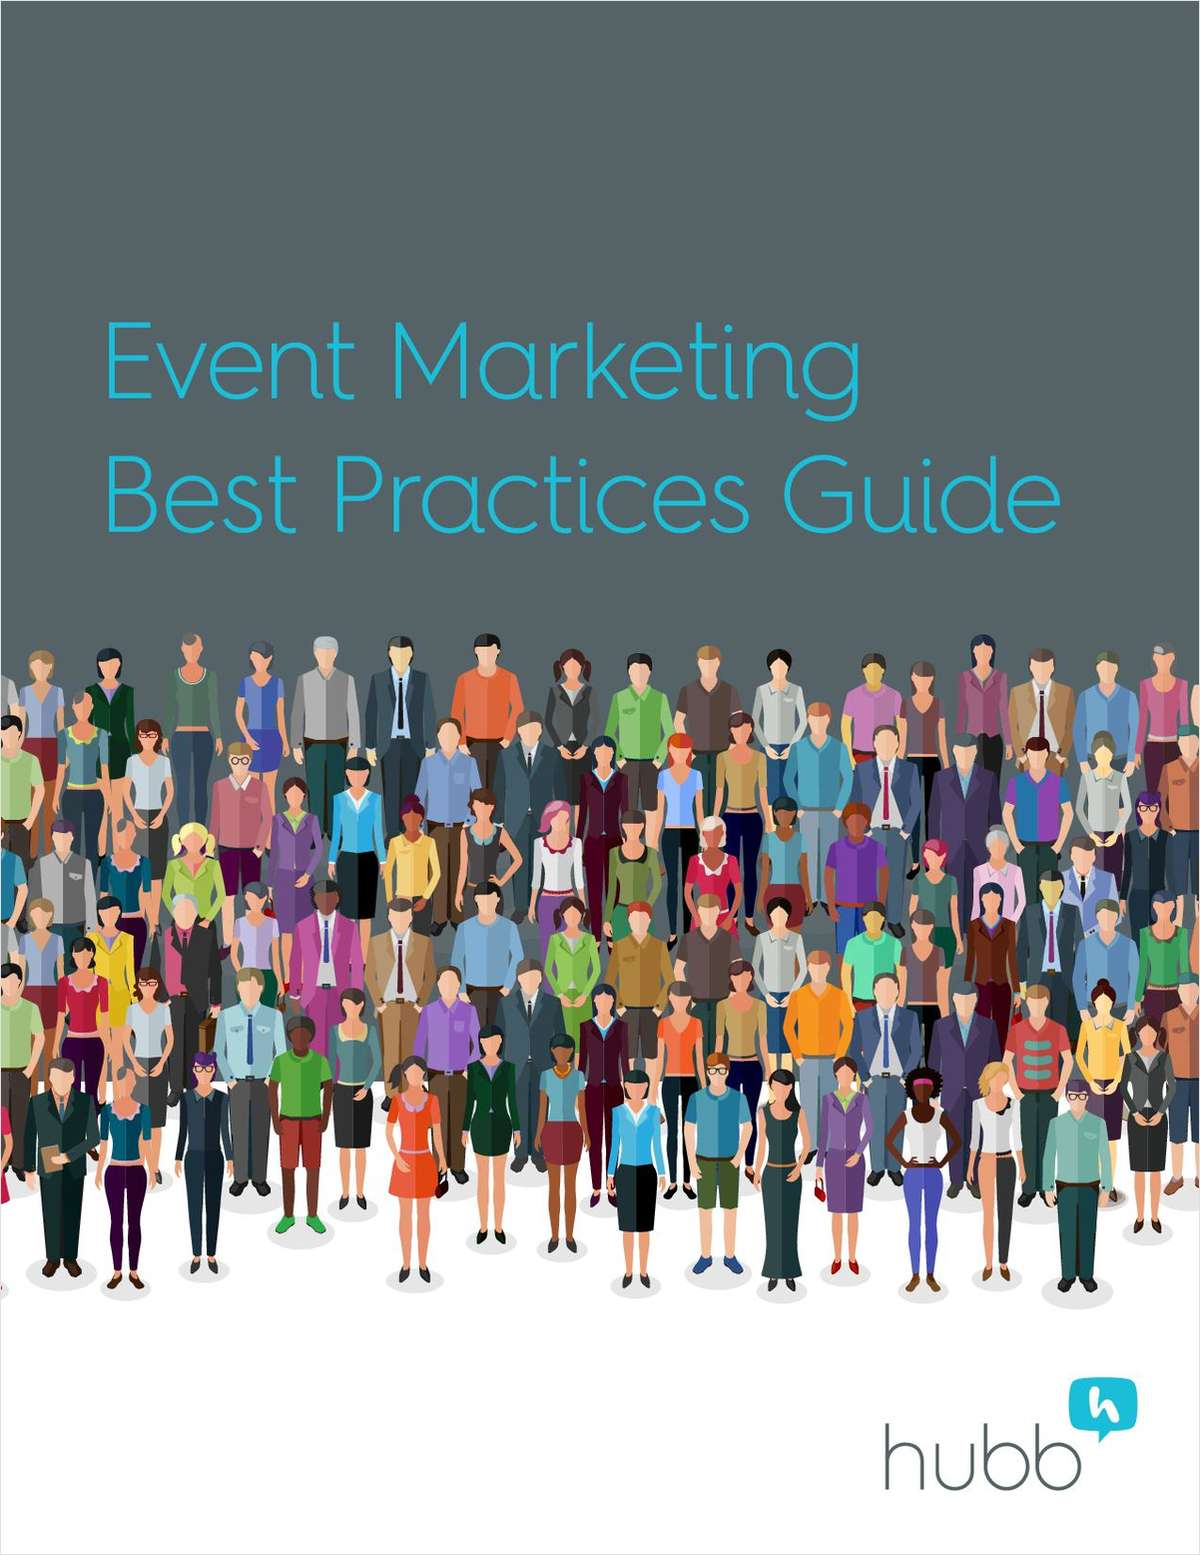 Event Marketing Best Practices Guide